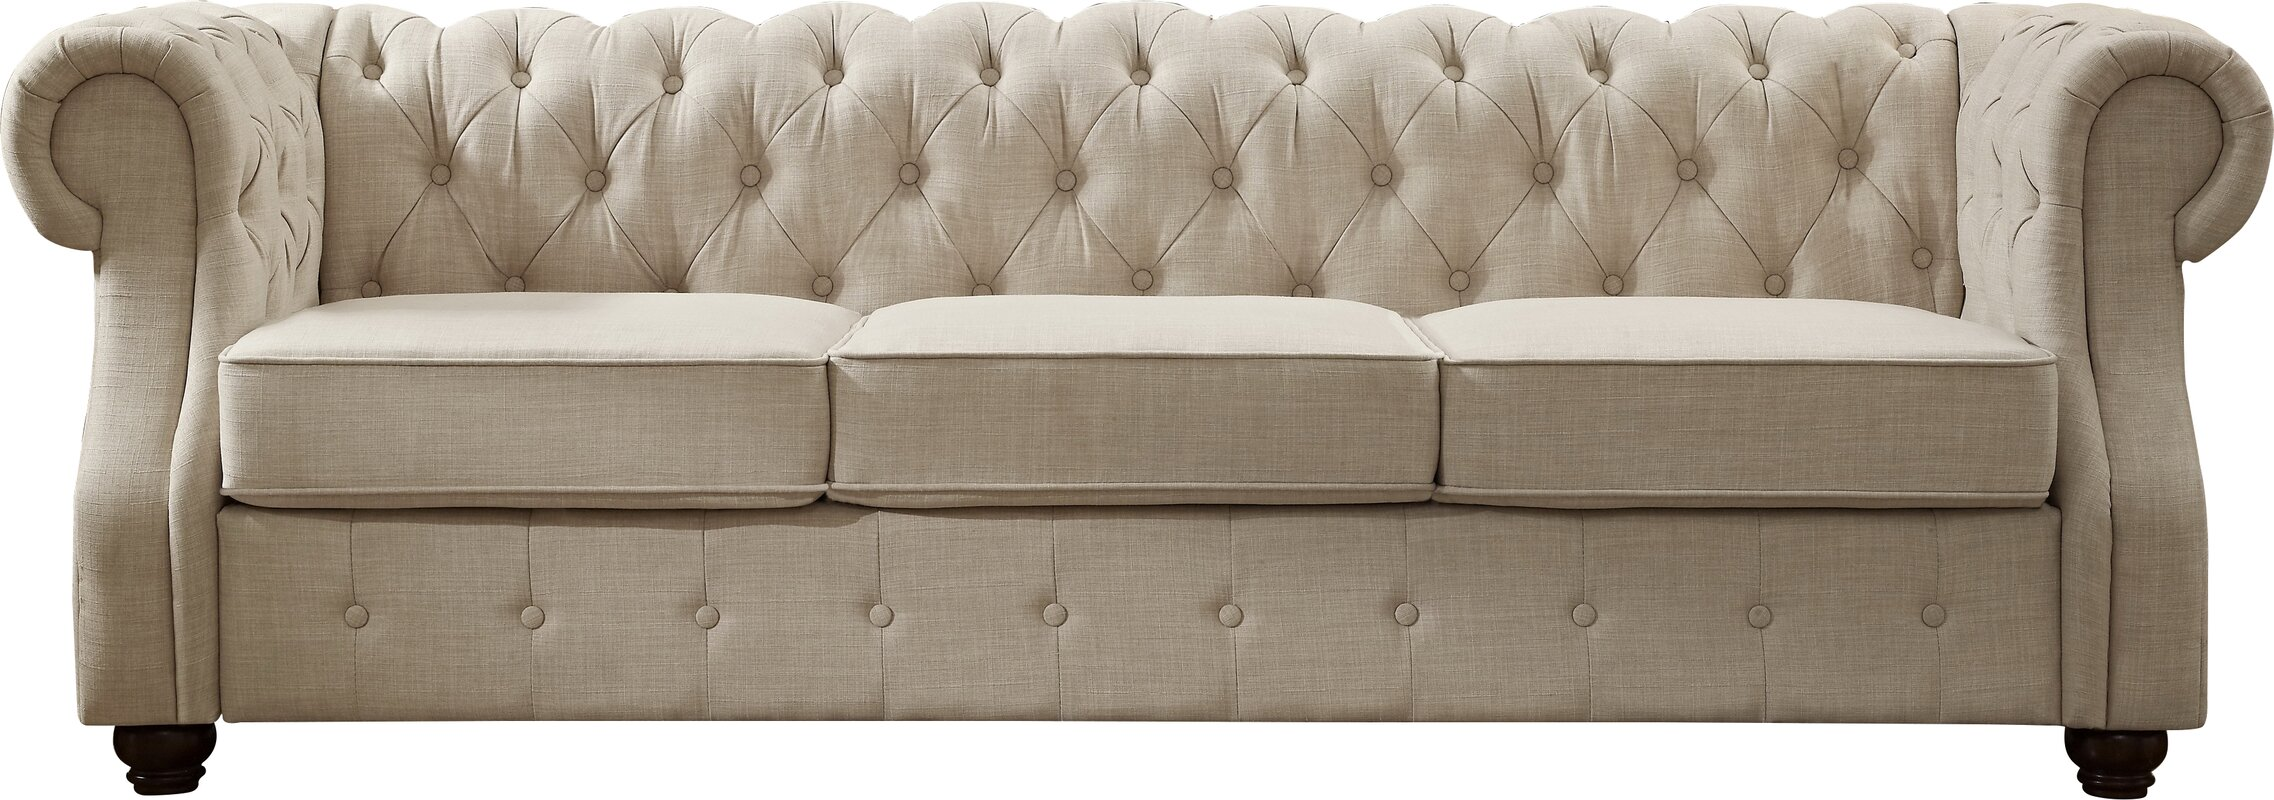 Attractive Evart Tufted Chesterfield Sofa